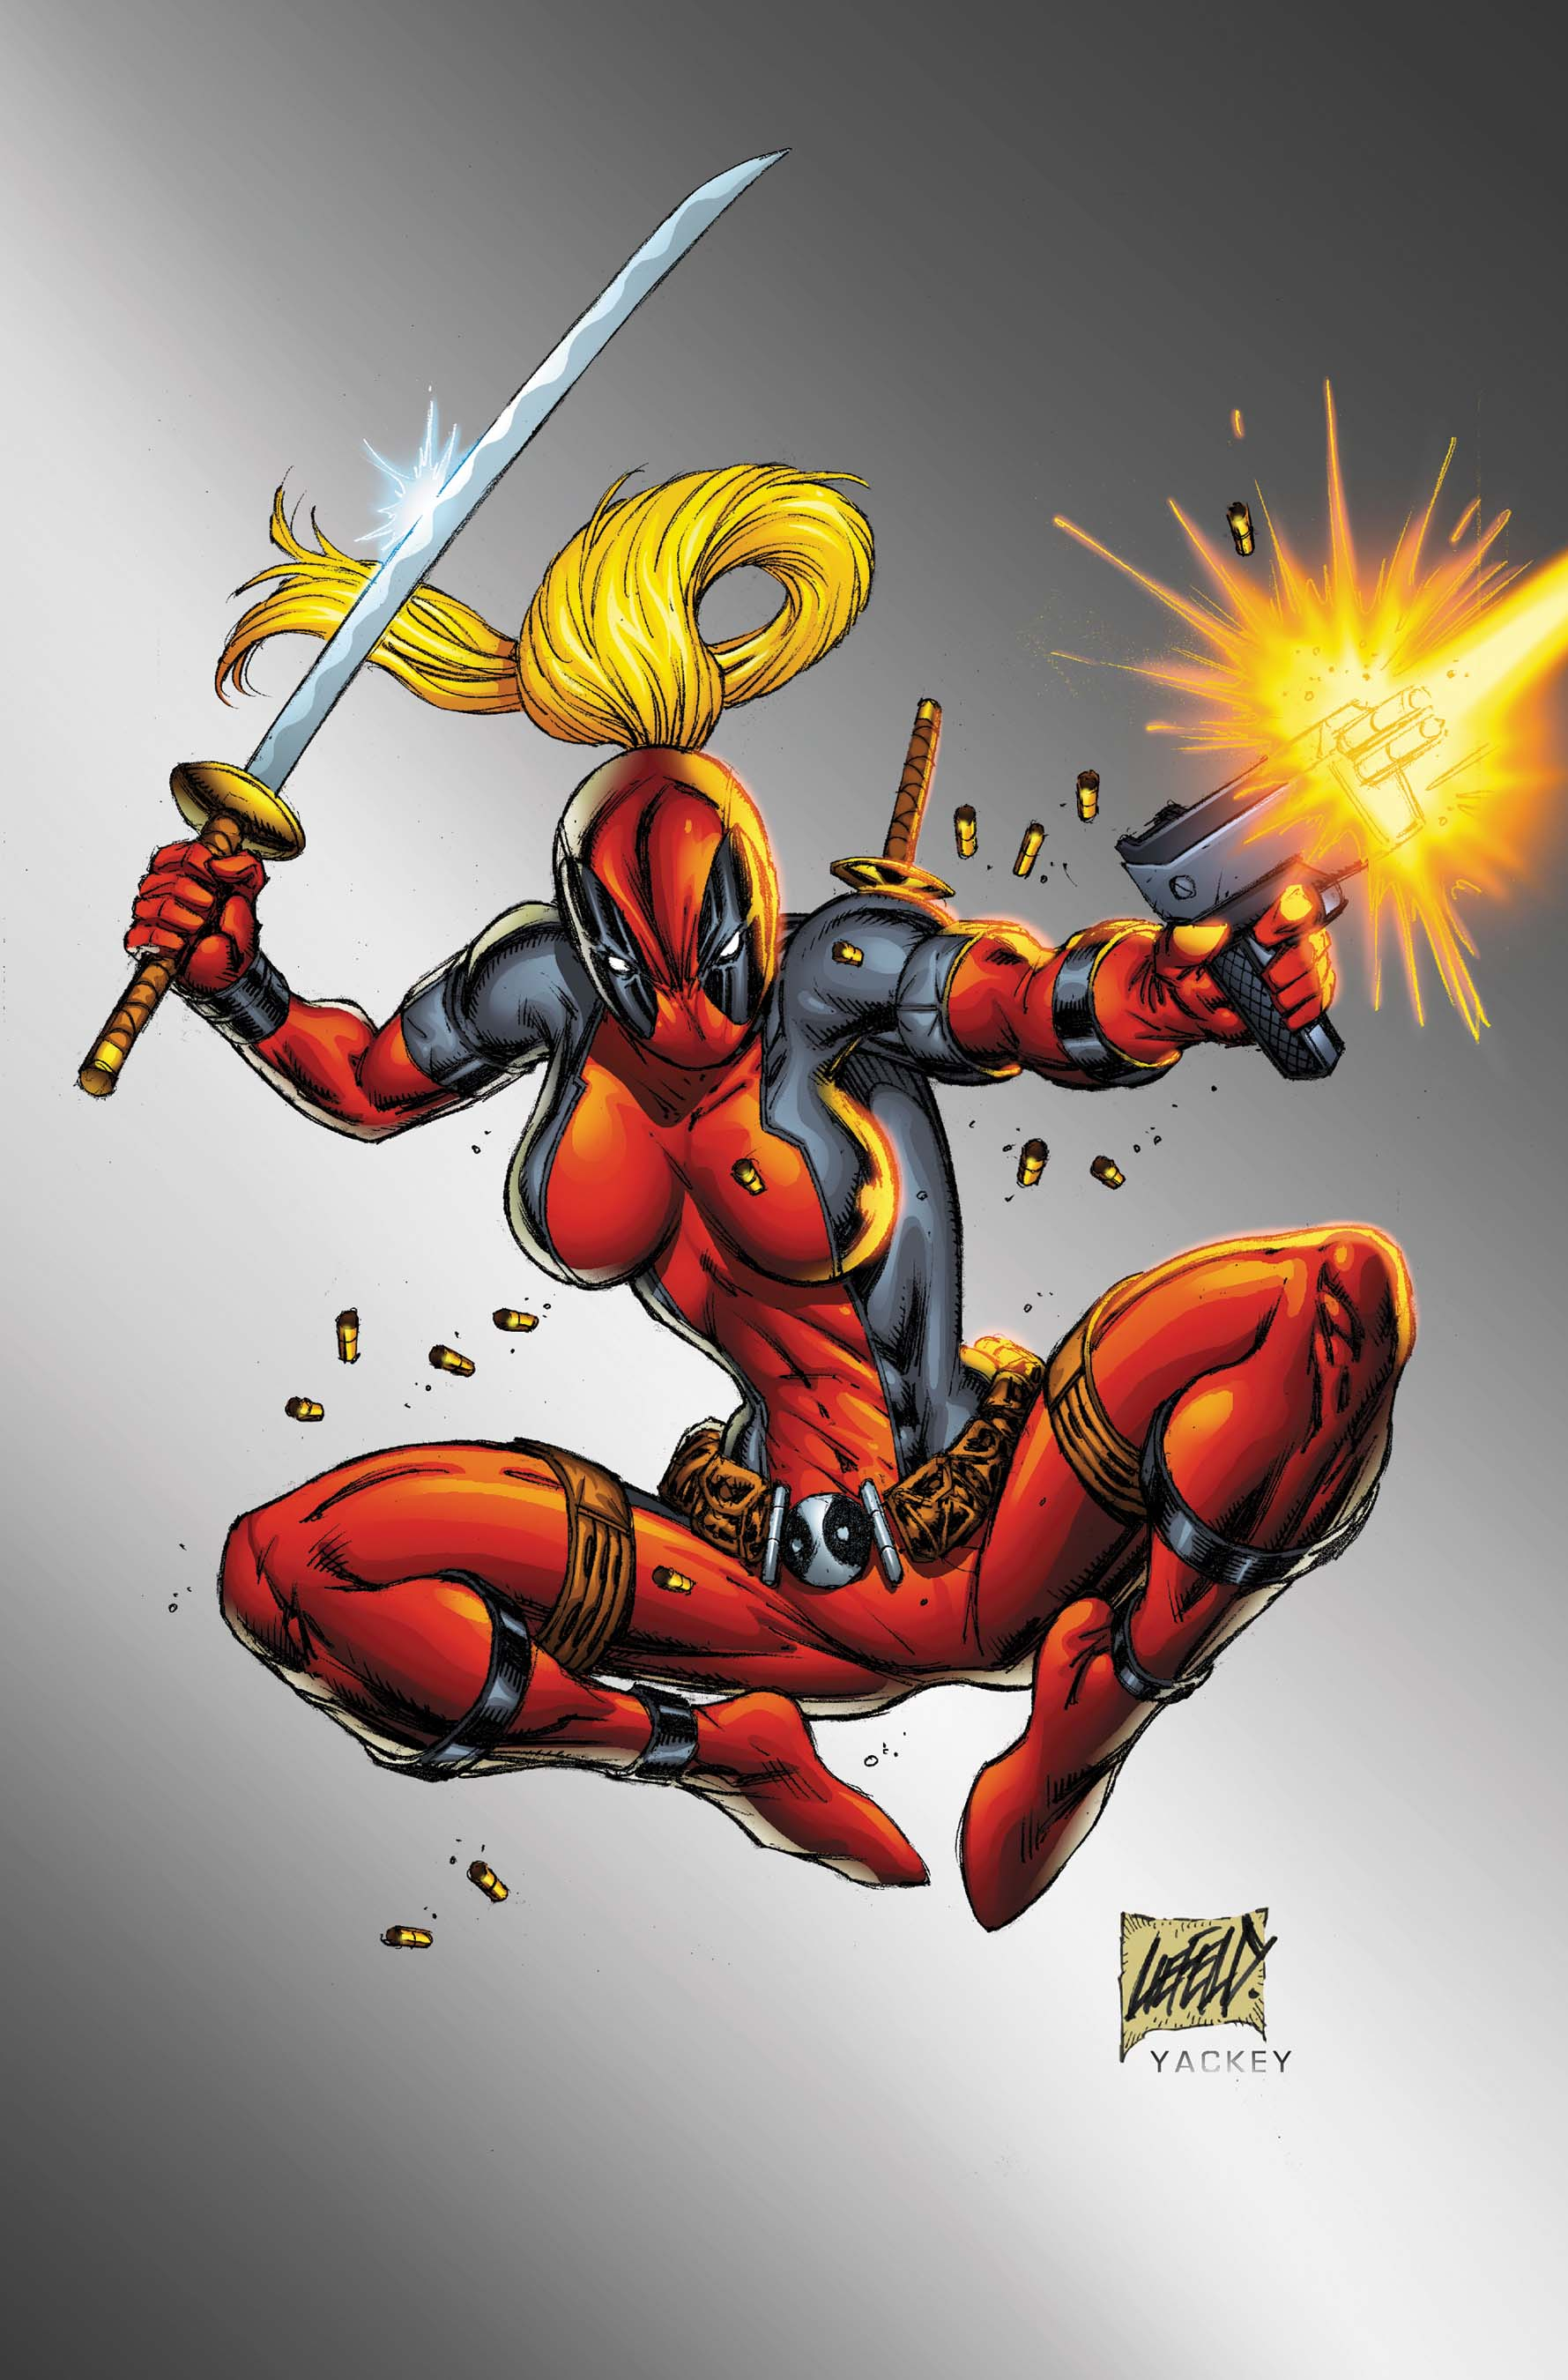 OF 13 2ND PTG VARIANT COVER LADY ROB LIEFELD NEW DEADPOOL MERC WITH A MOUTH #7